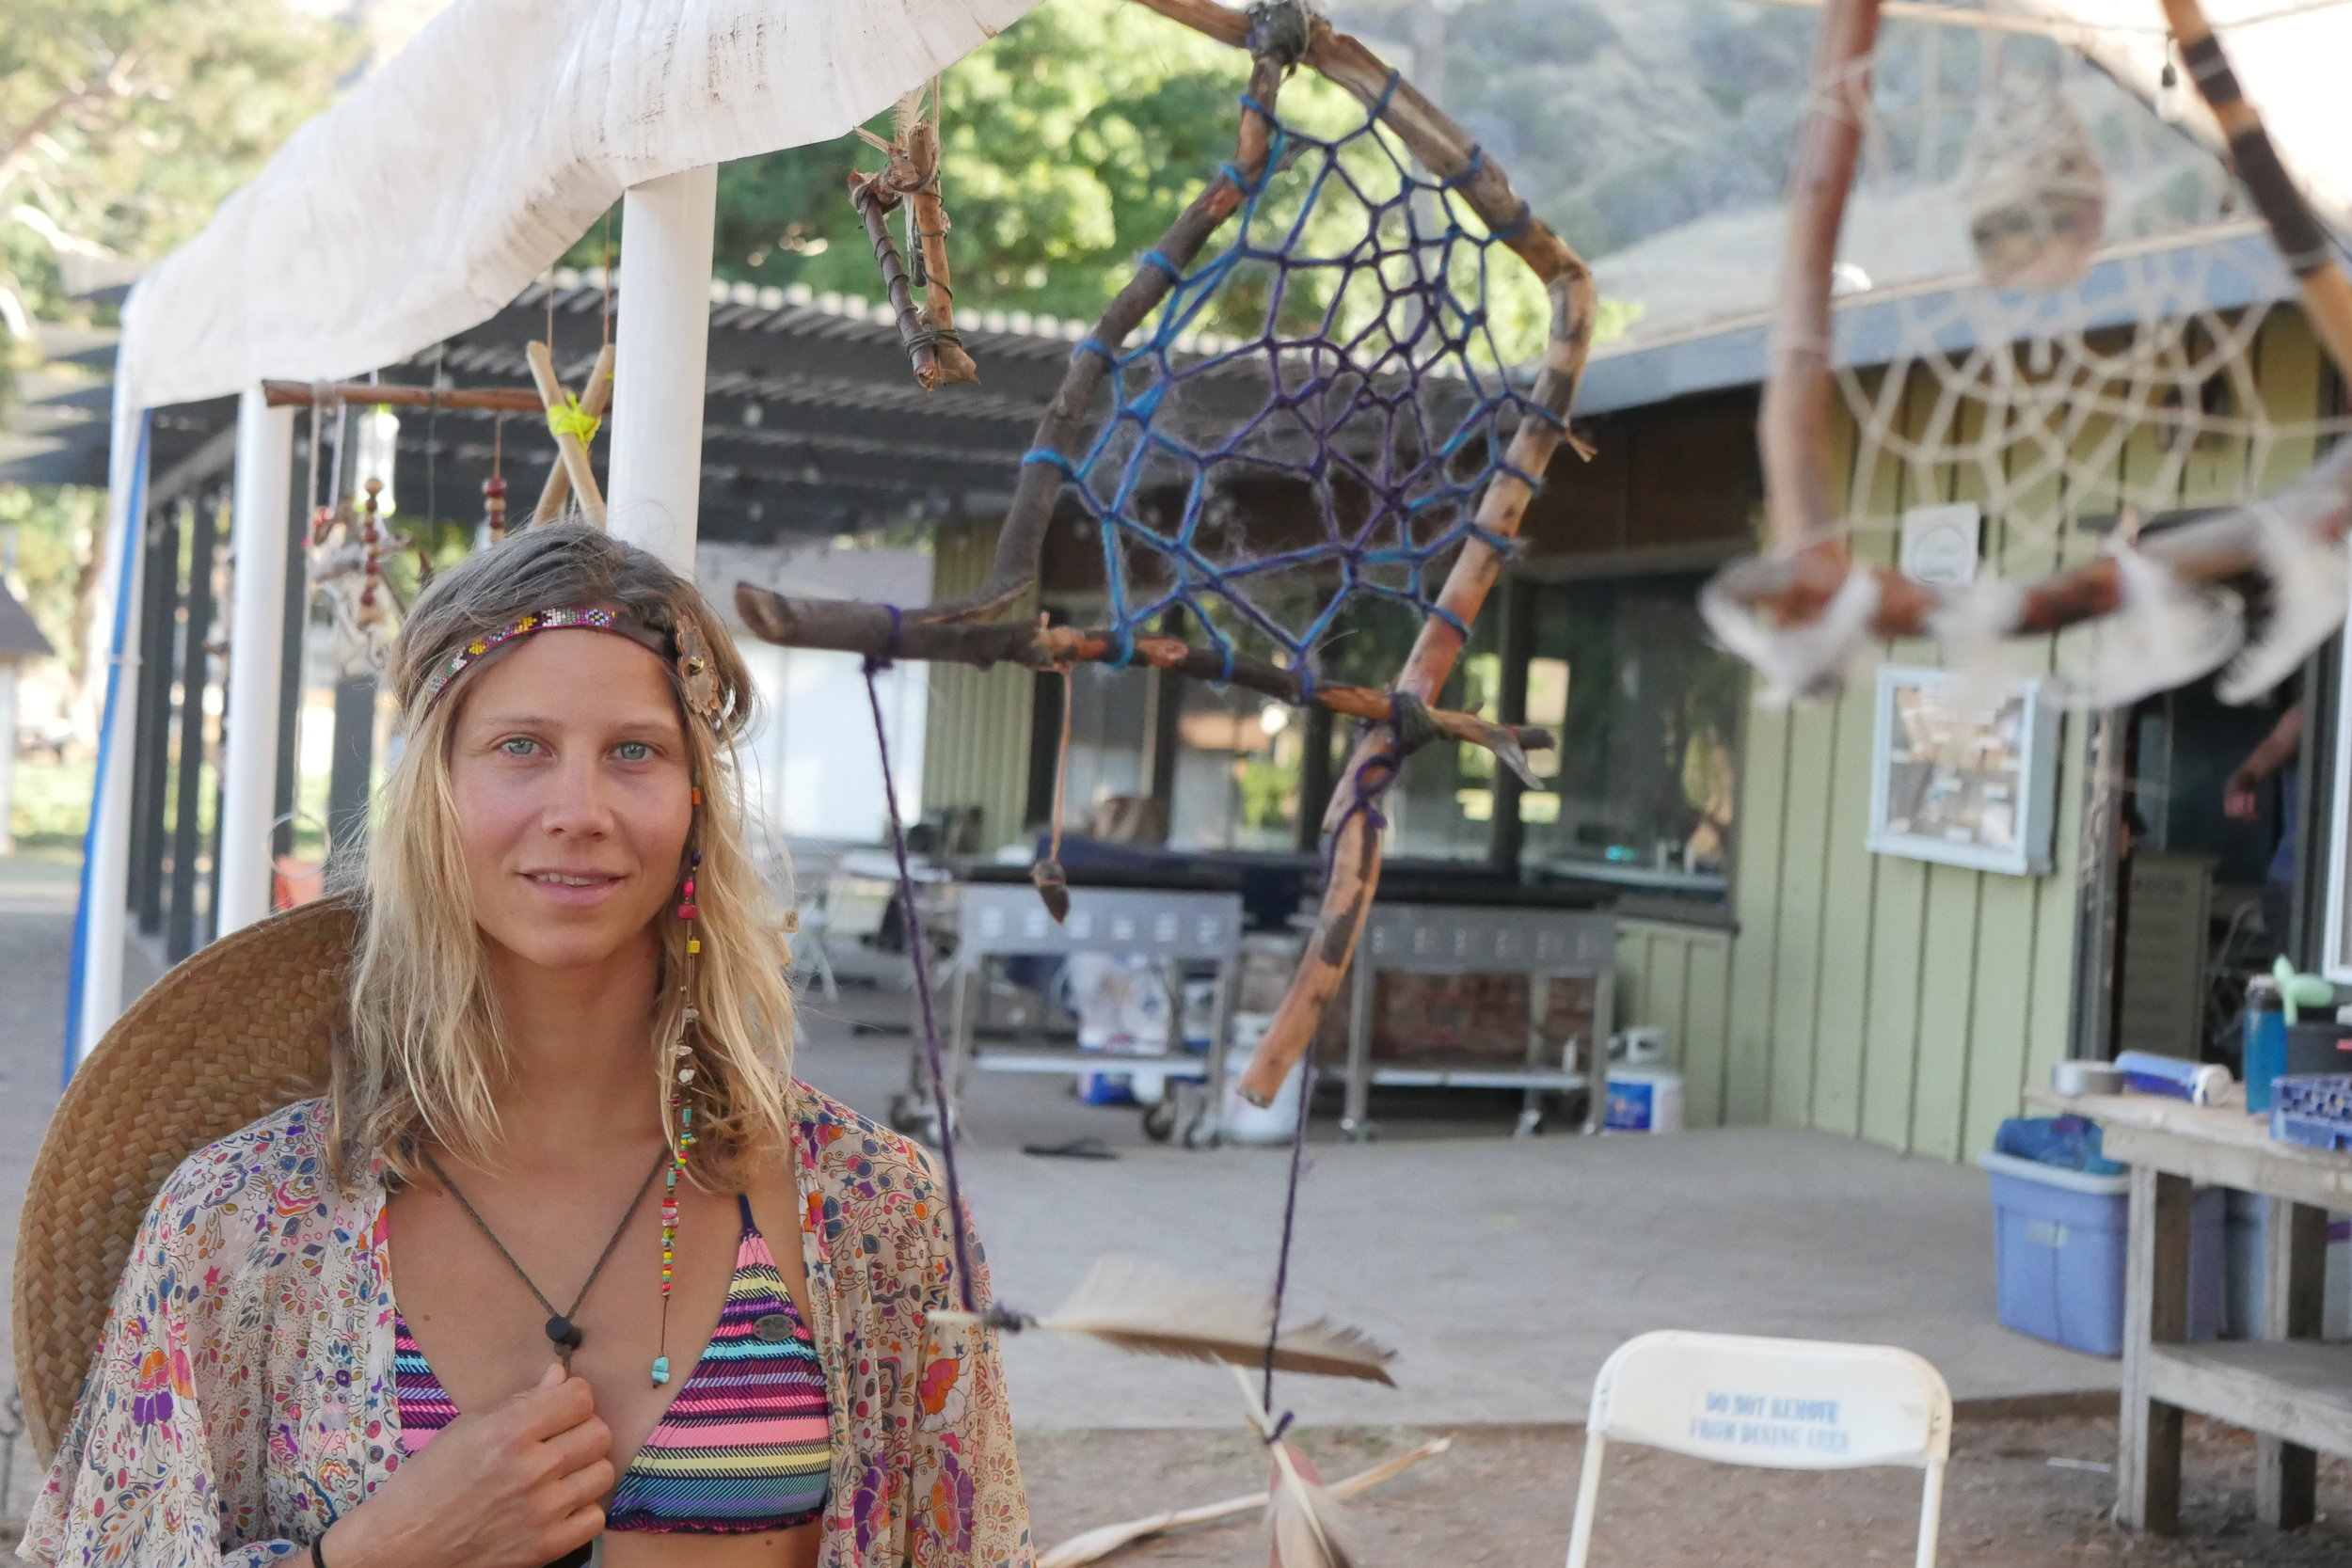 All kinds of shapes Dream Catchers made for unique art to be enjoyed around the camp site